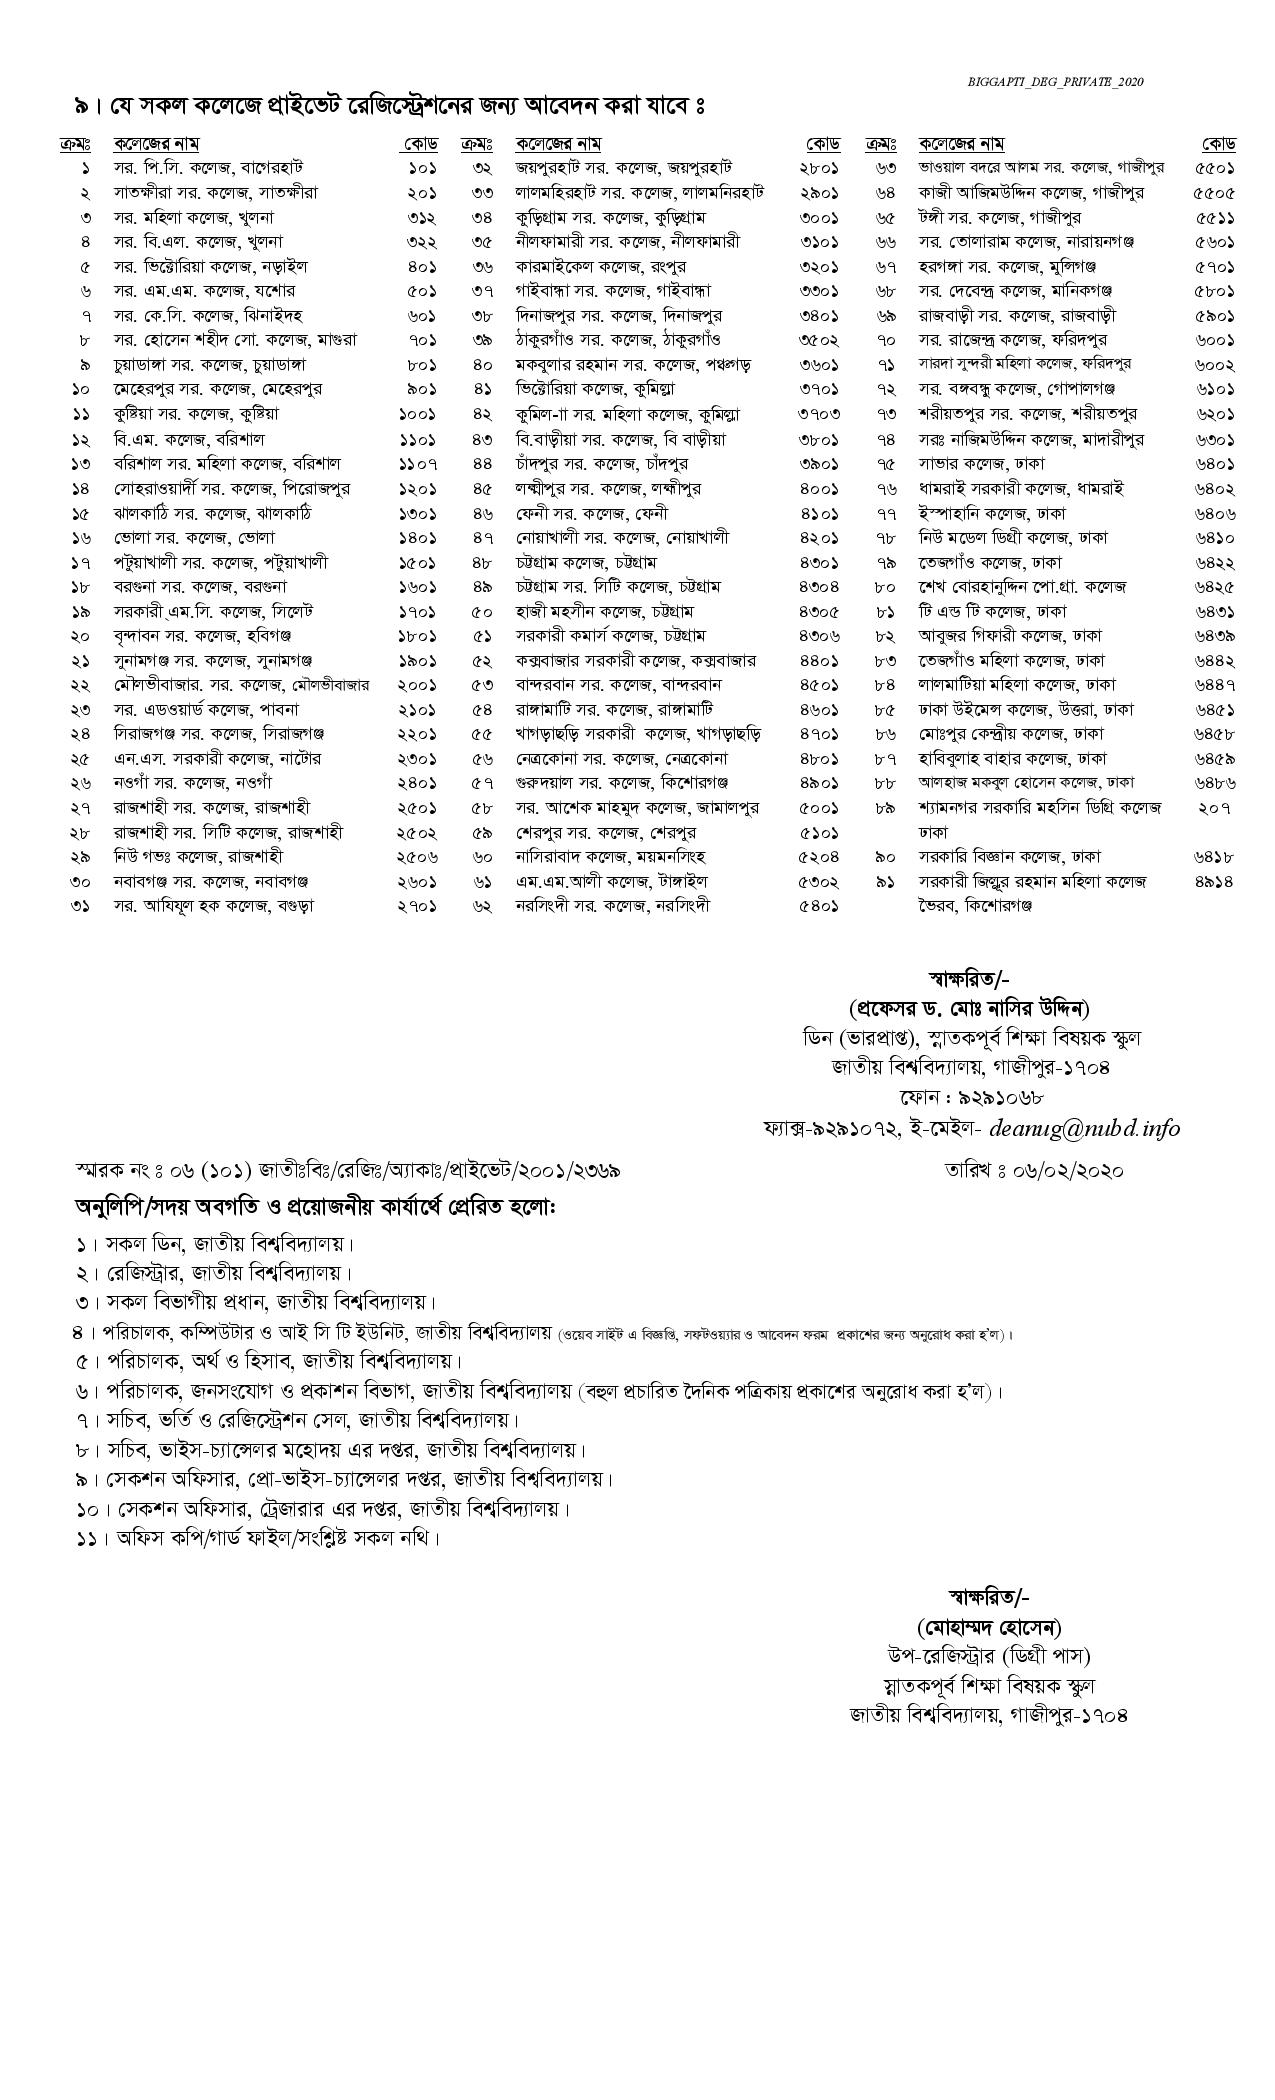 degree-private-admission-notice-page-004